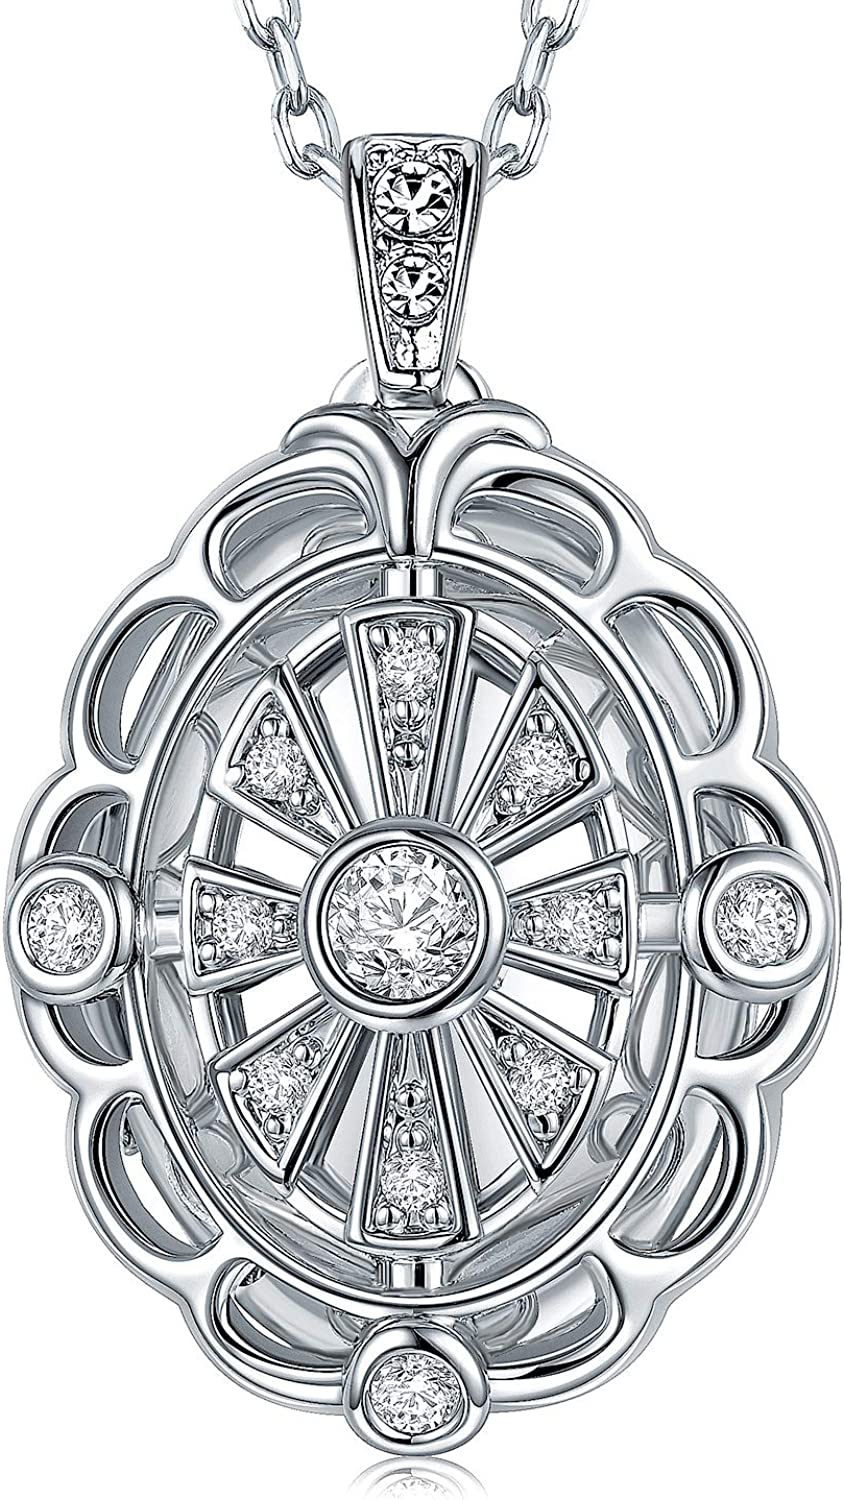 Gothic Photo Locket Necklace Larger Than A $1 Coin Is Handmade With Platinum Plated Jewelry Pendant For Women 18 Inch Mariner Chain